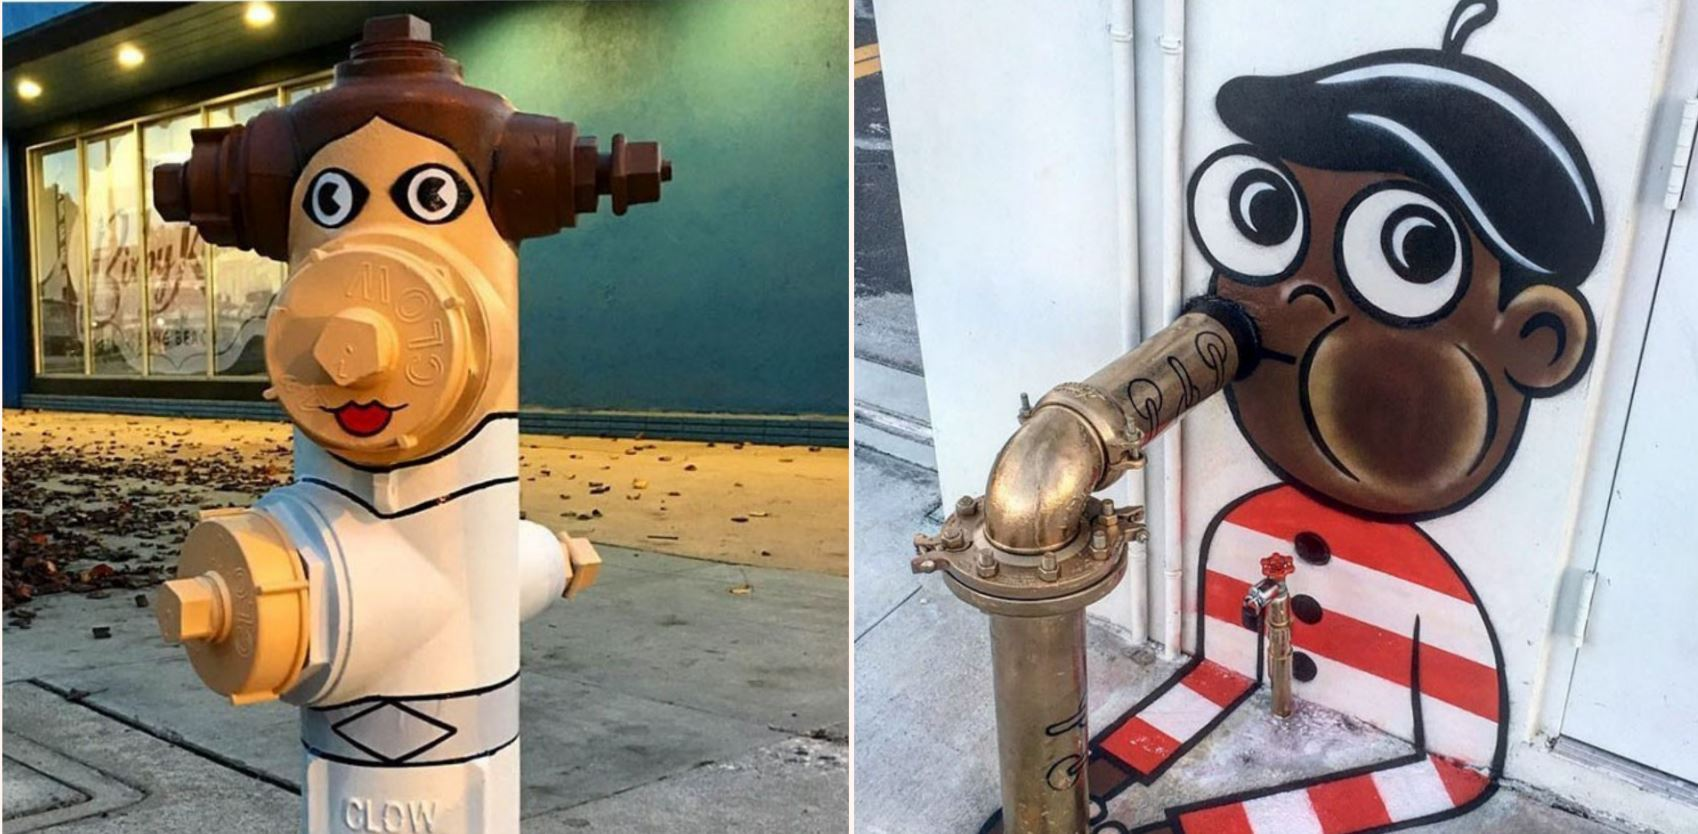 Legend street artist transforms city streets